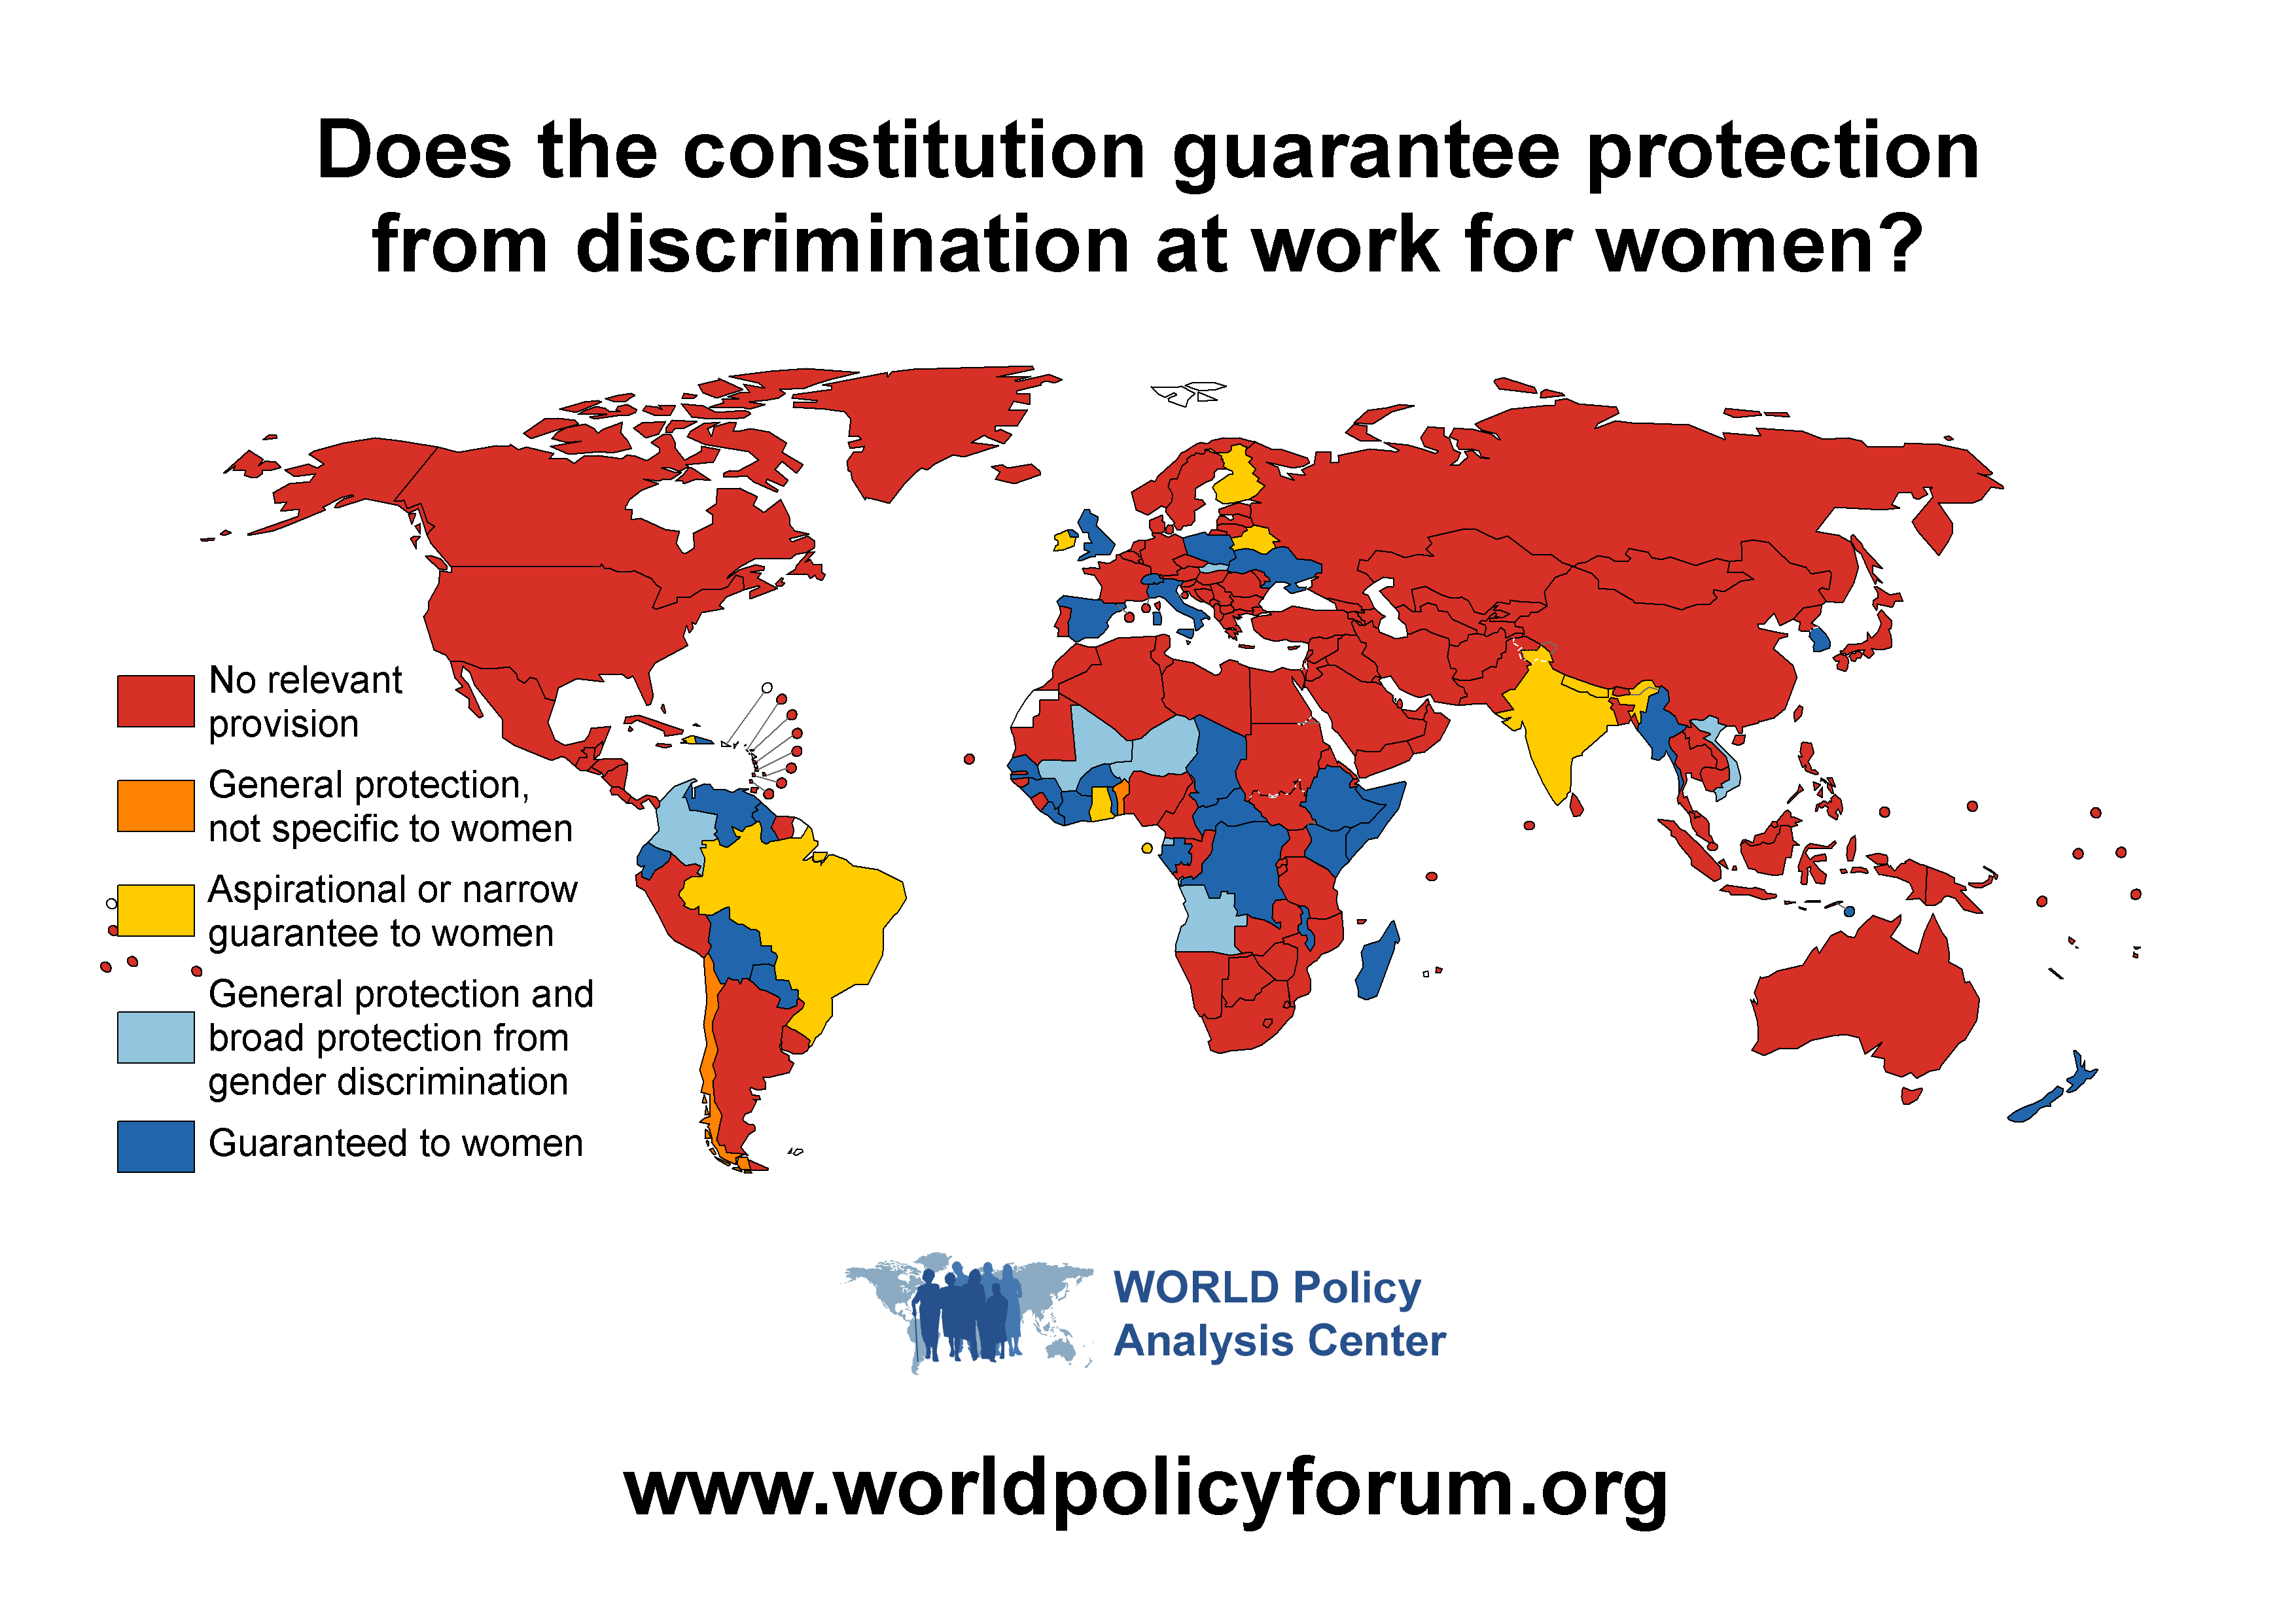 Map of countries whose constitutions guarantee protection from discrimination at work for women. Image courtesy of WORLD Policy Analysis Center.